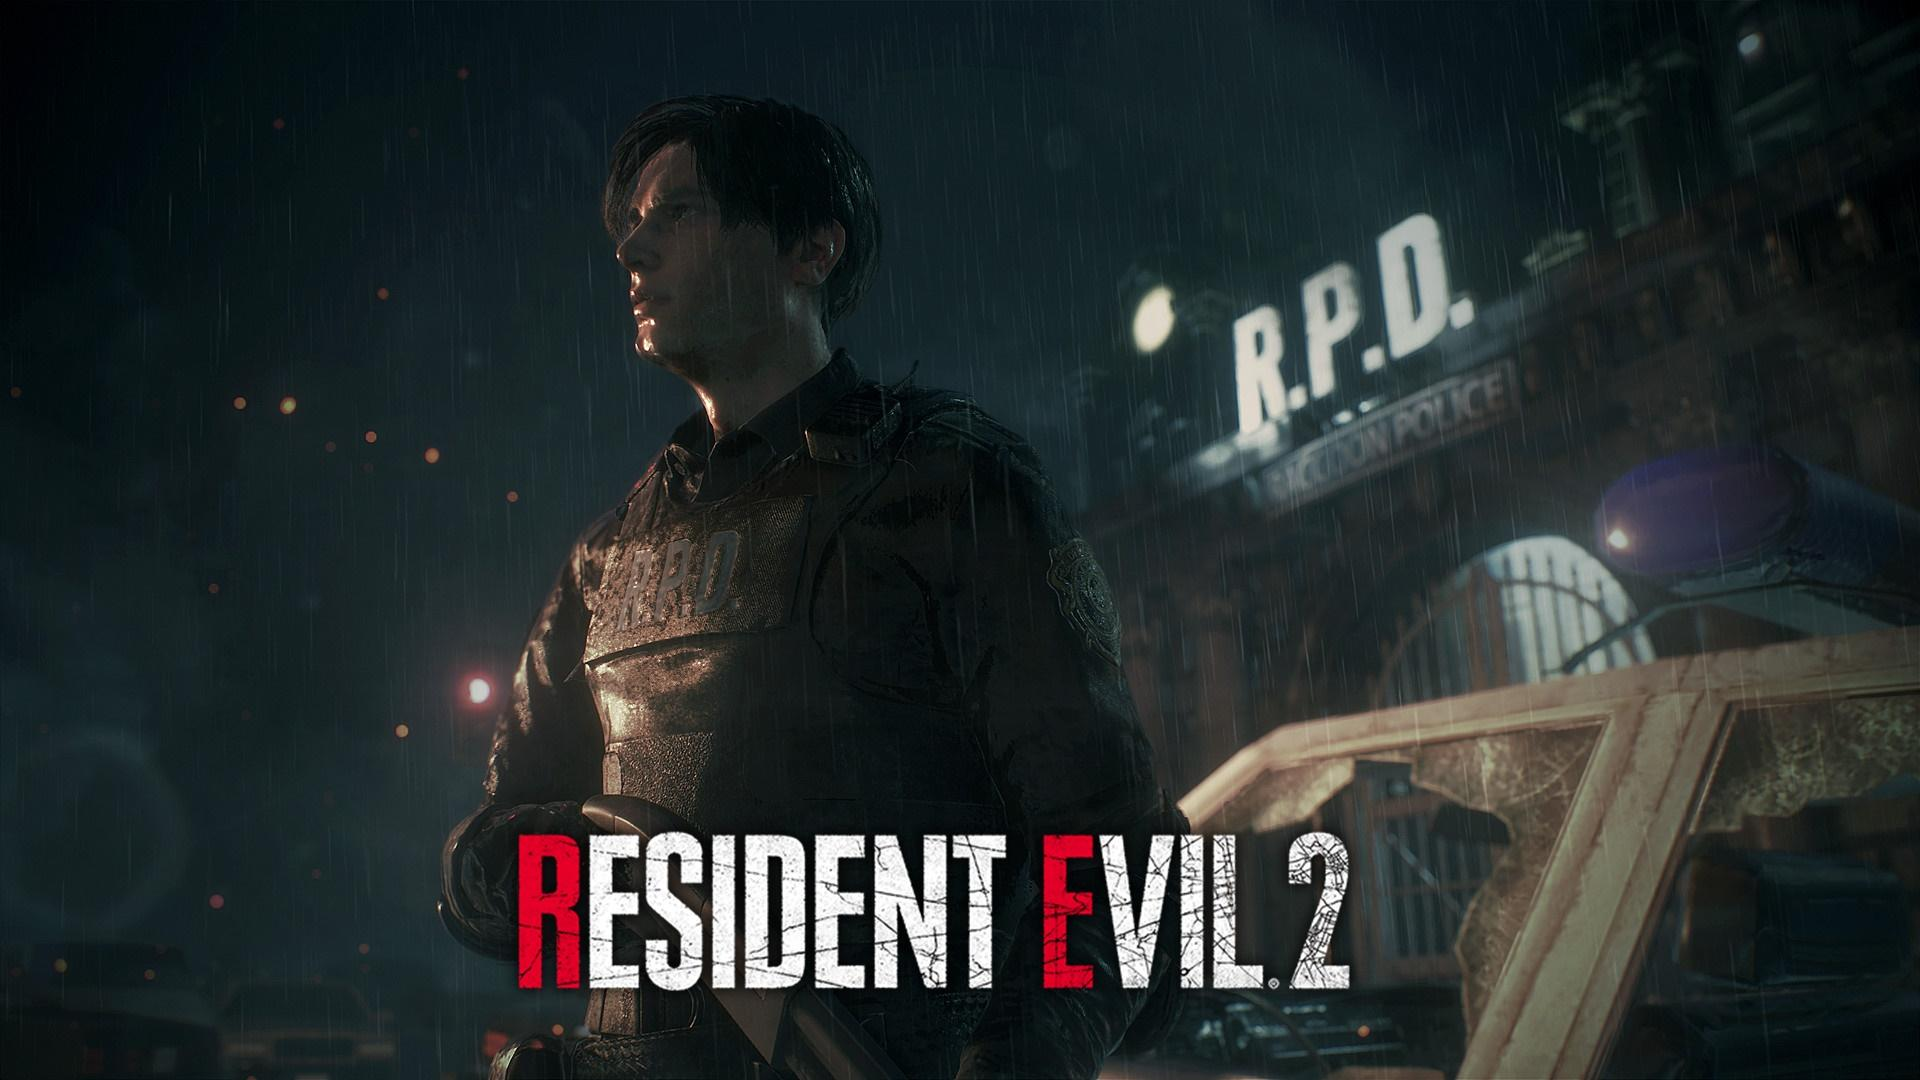 Sobre Resident Evil 2 Remake e Requisitos de Sistema